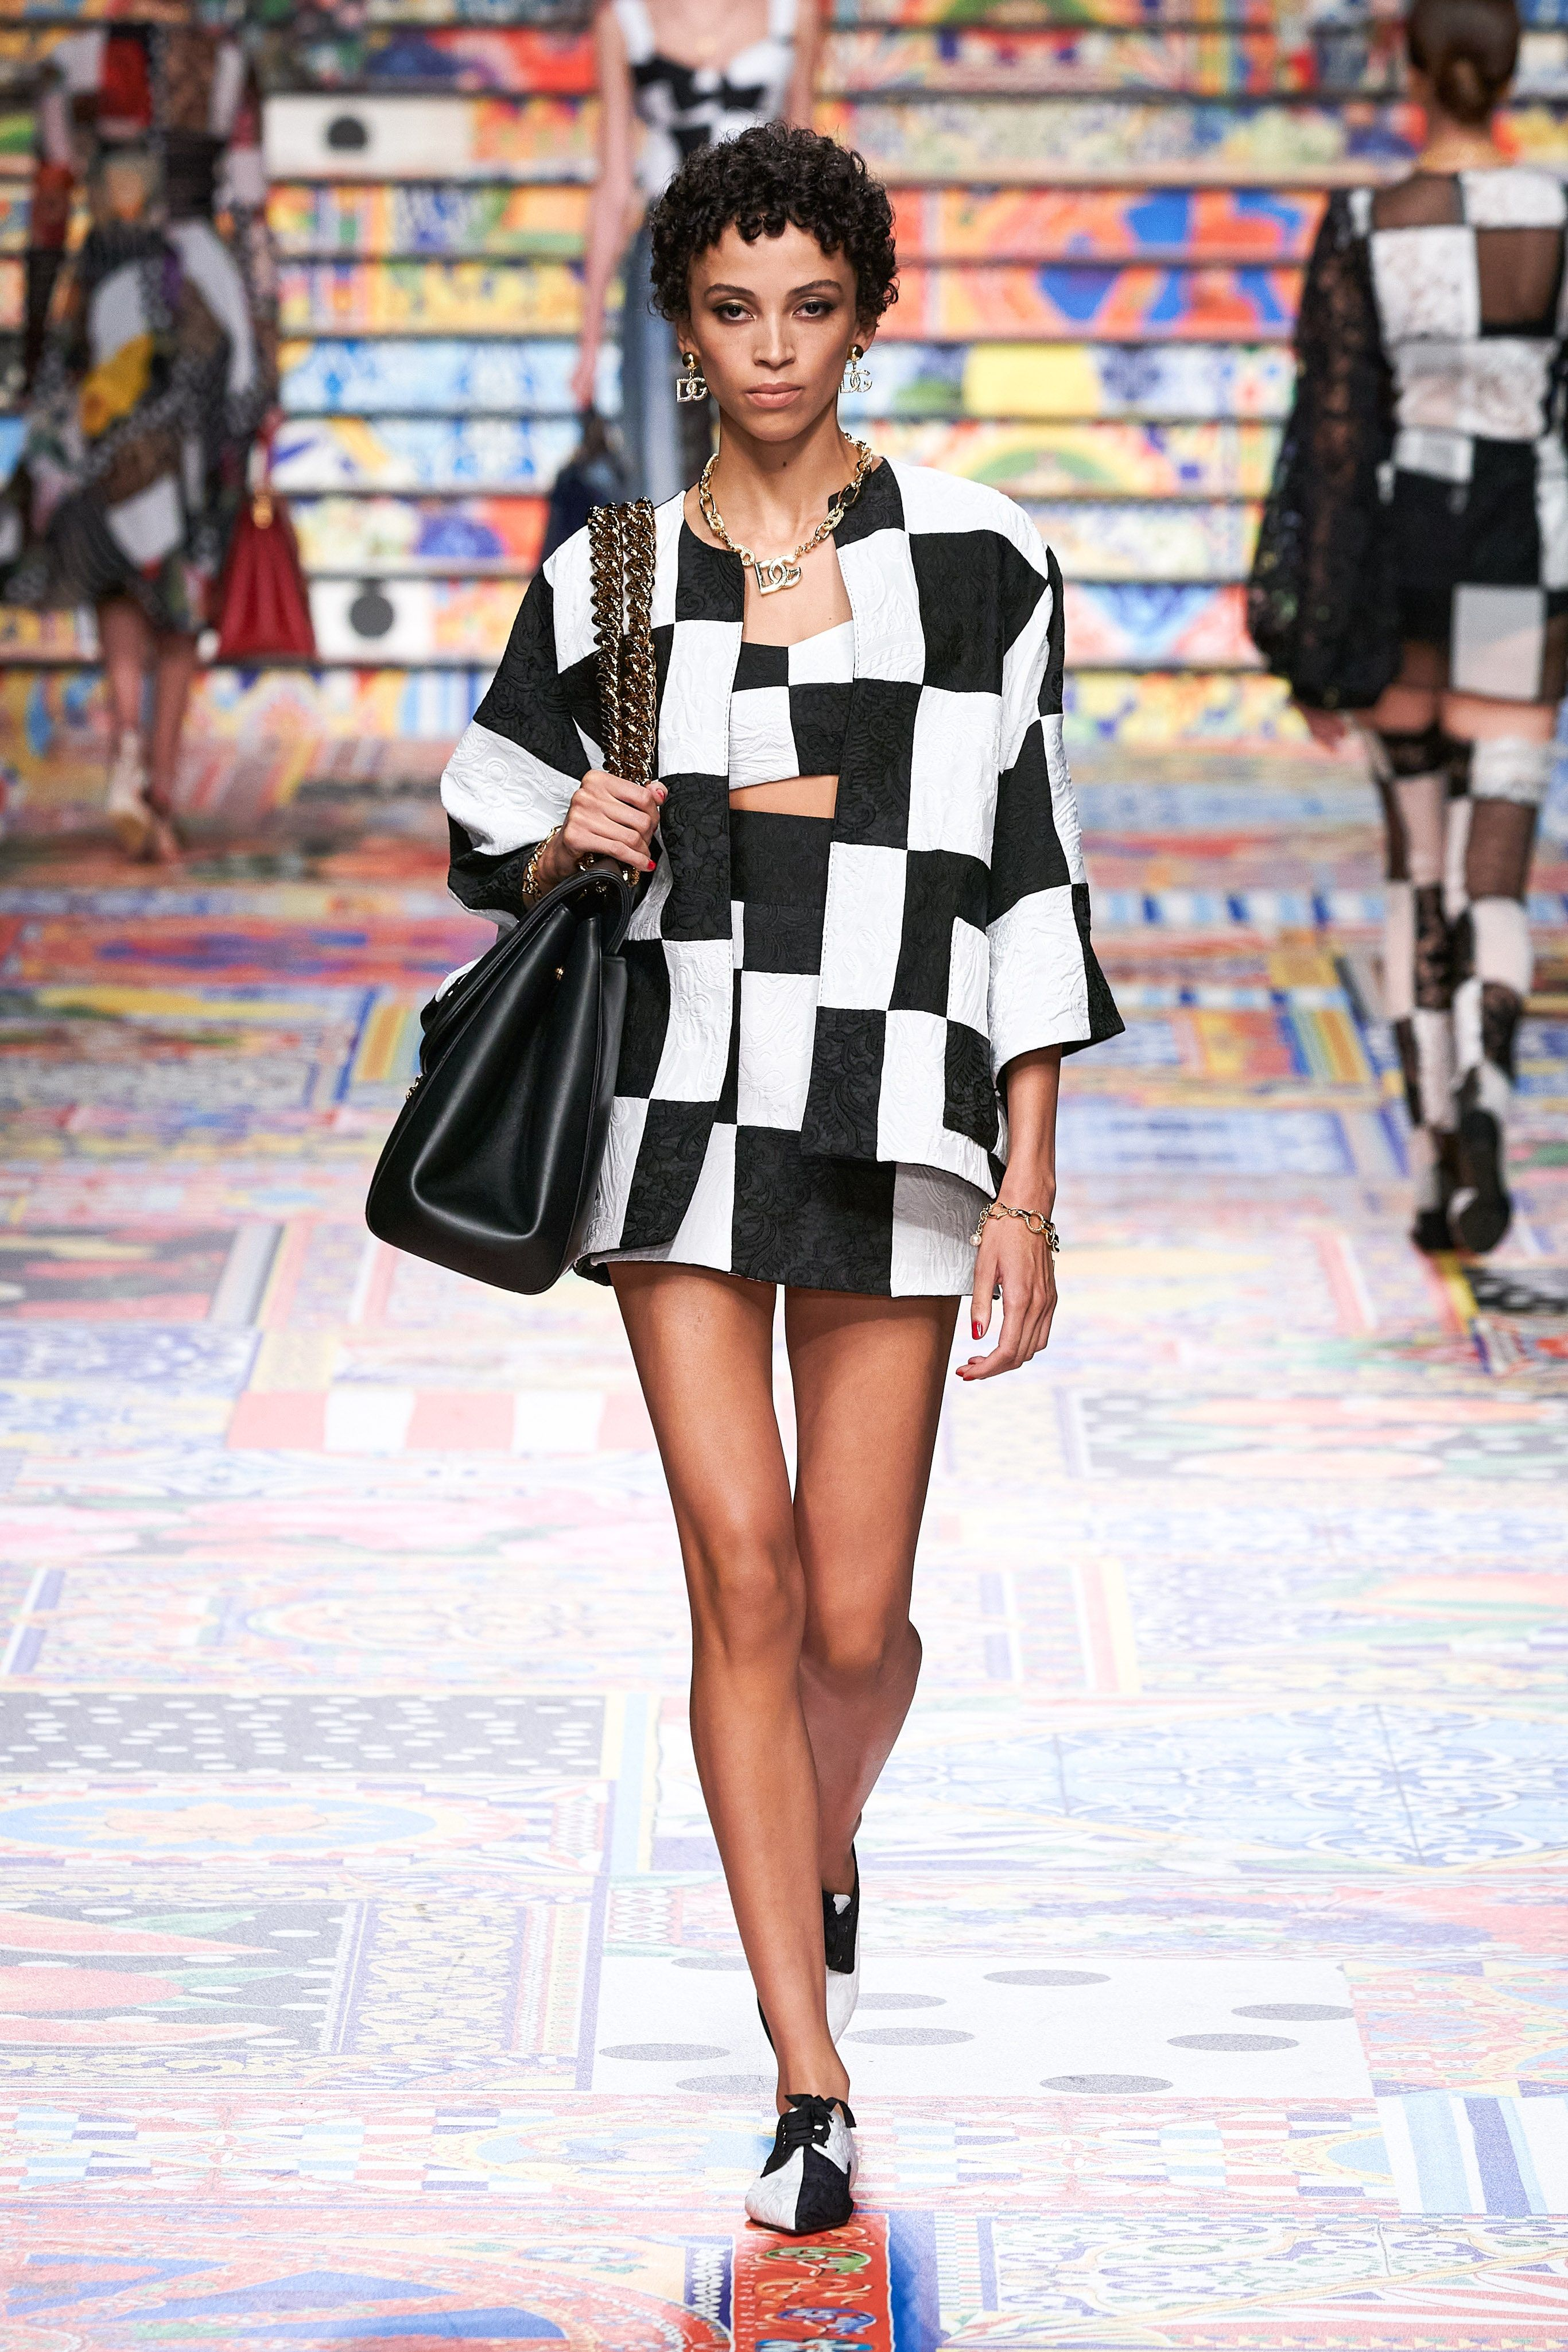 Image result for dolce and gabbana chequered dress spring 2021